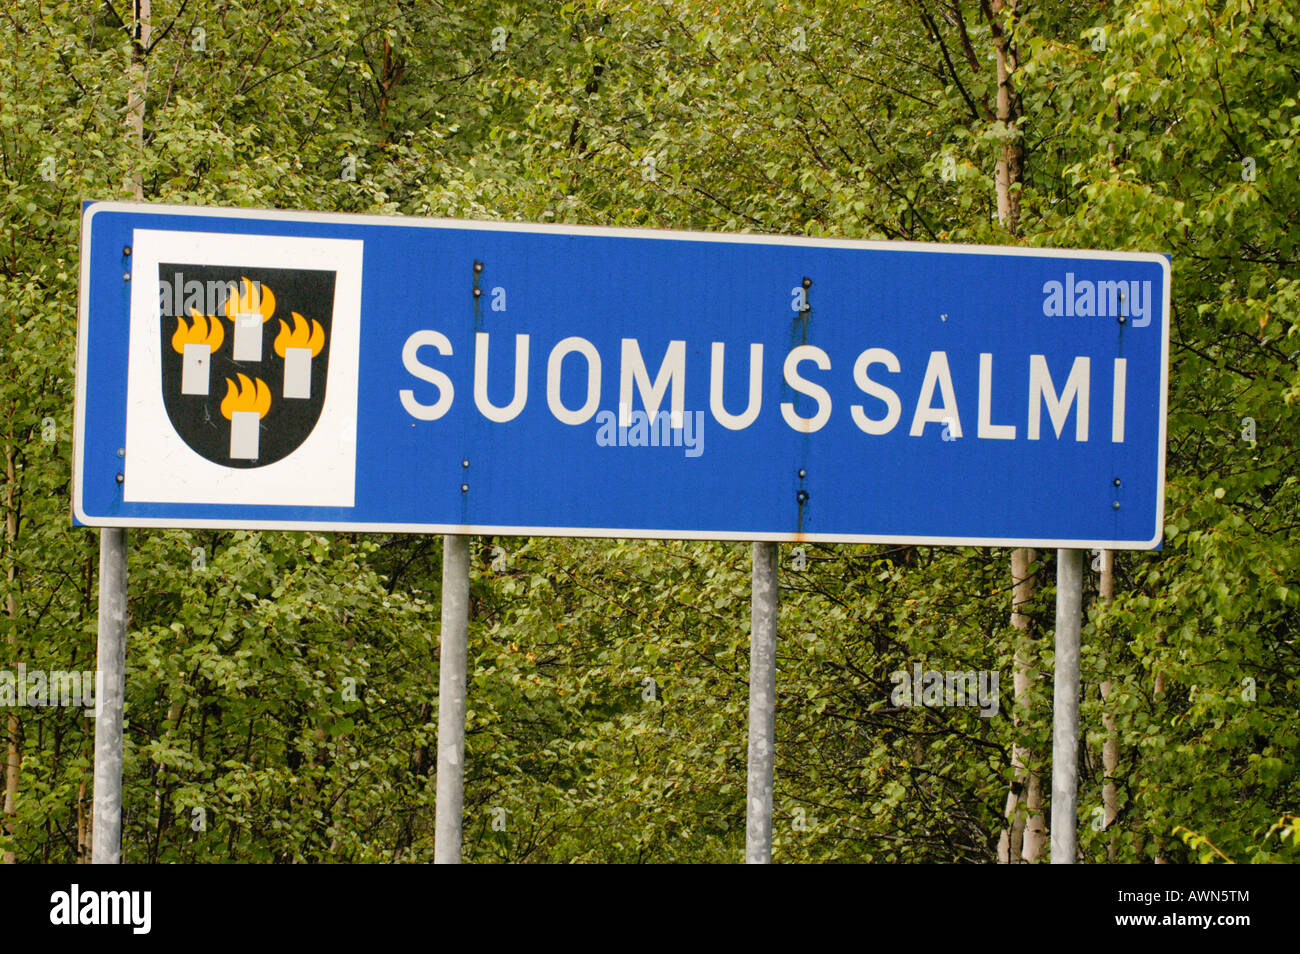 Sign, Suomussalmi, Finland, Europe - Stock Image